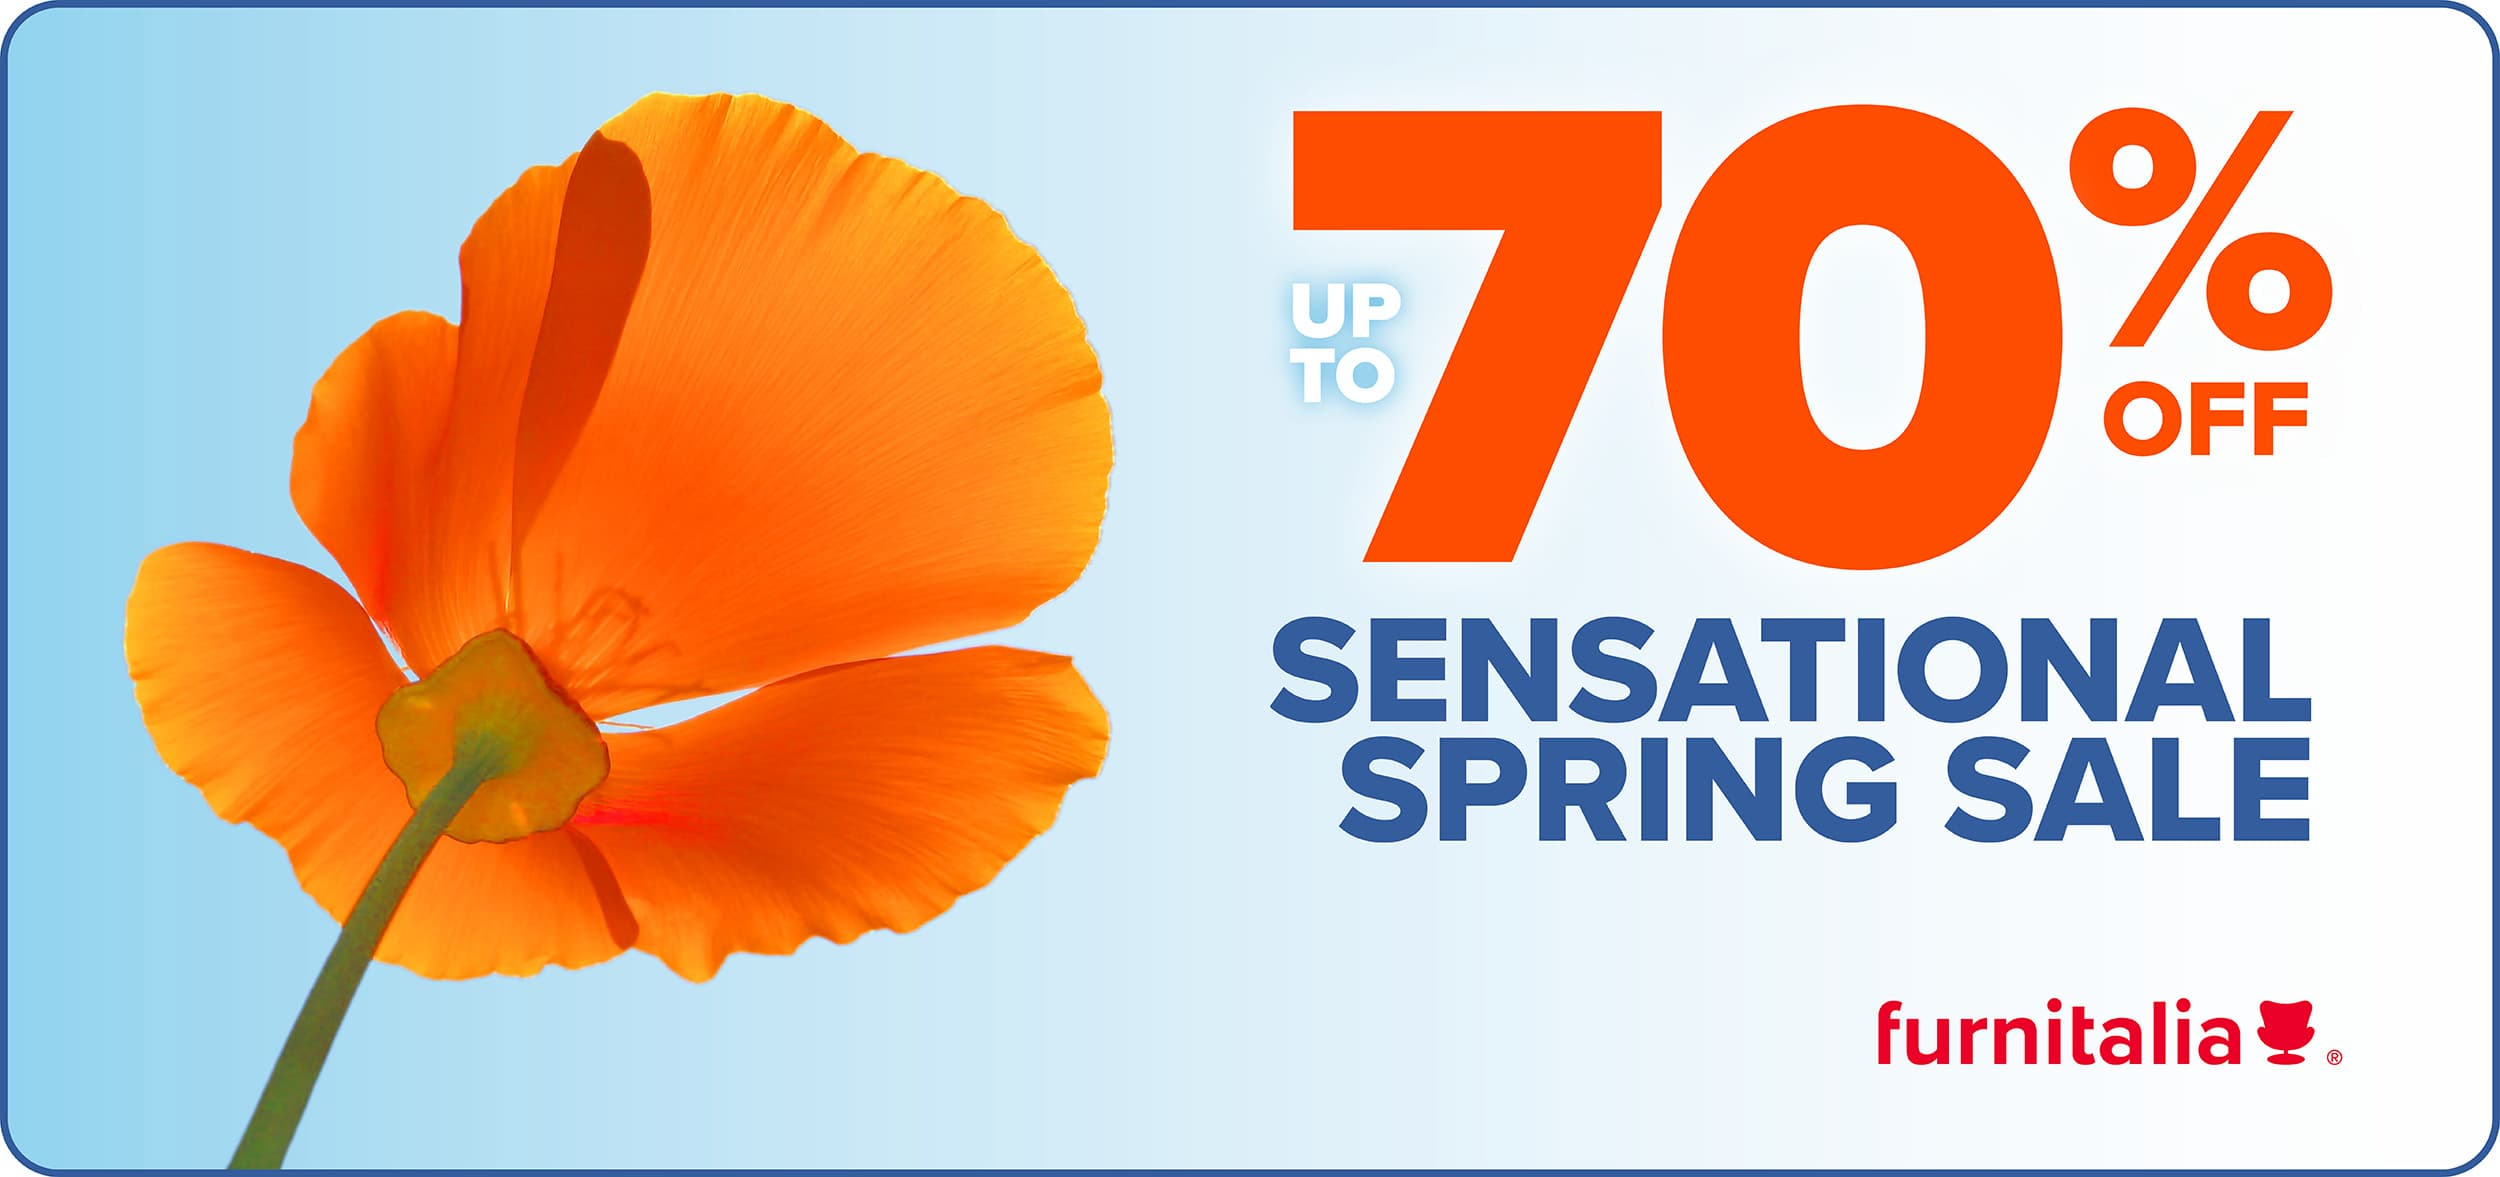 Furnitalia Spring Clearance Sale - up to 70% OFF